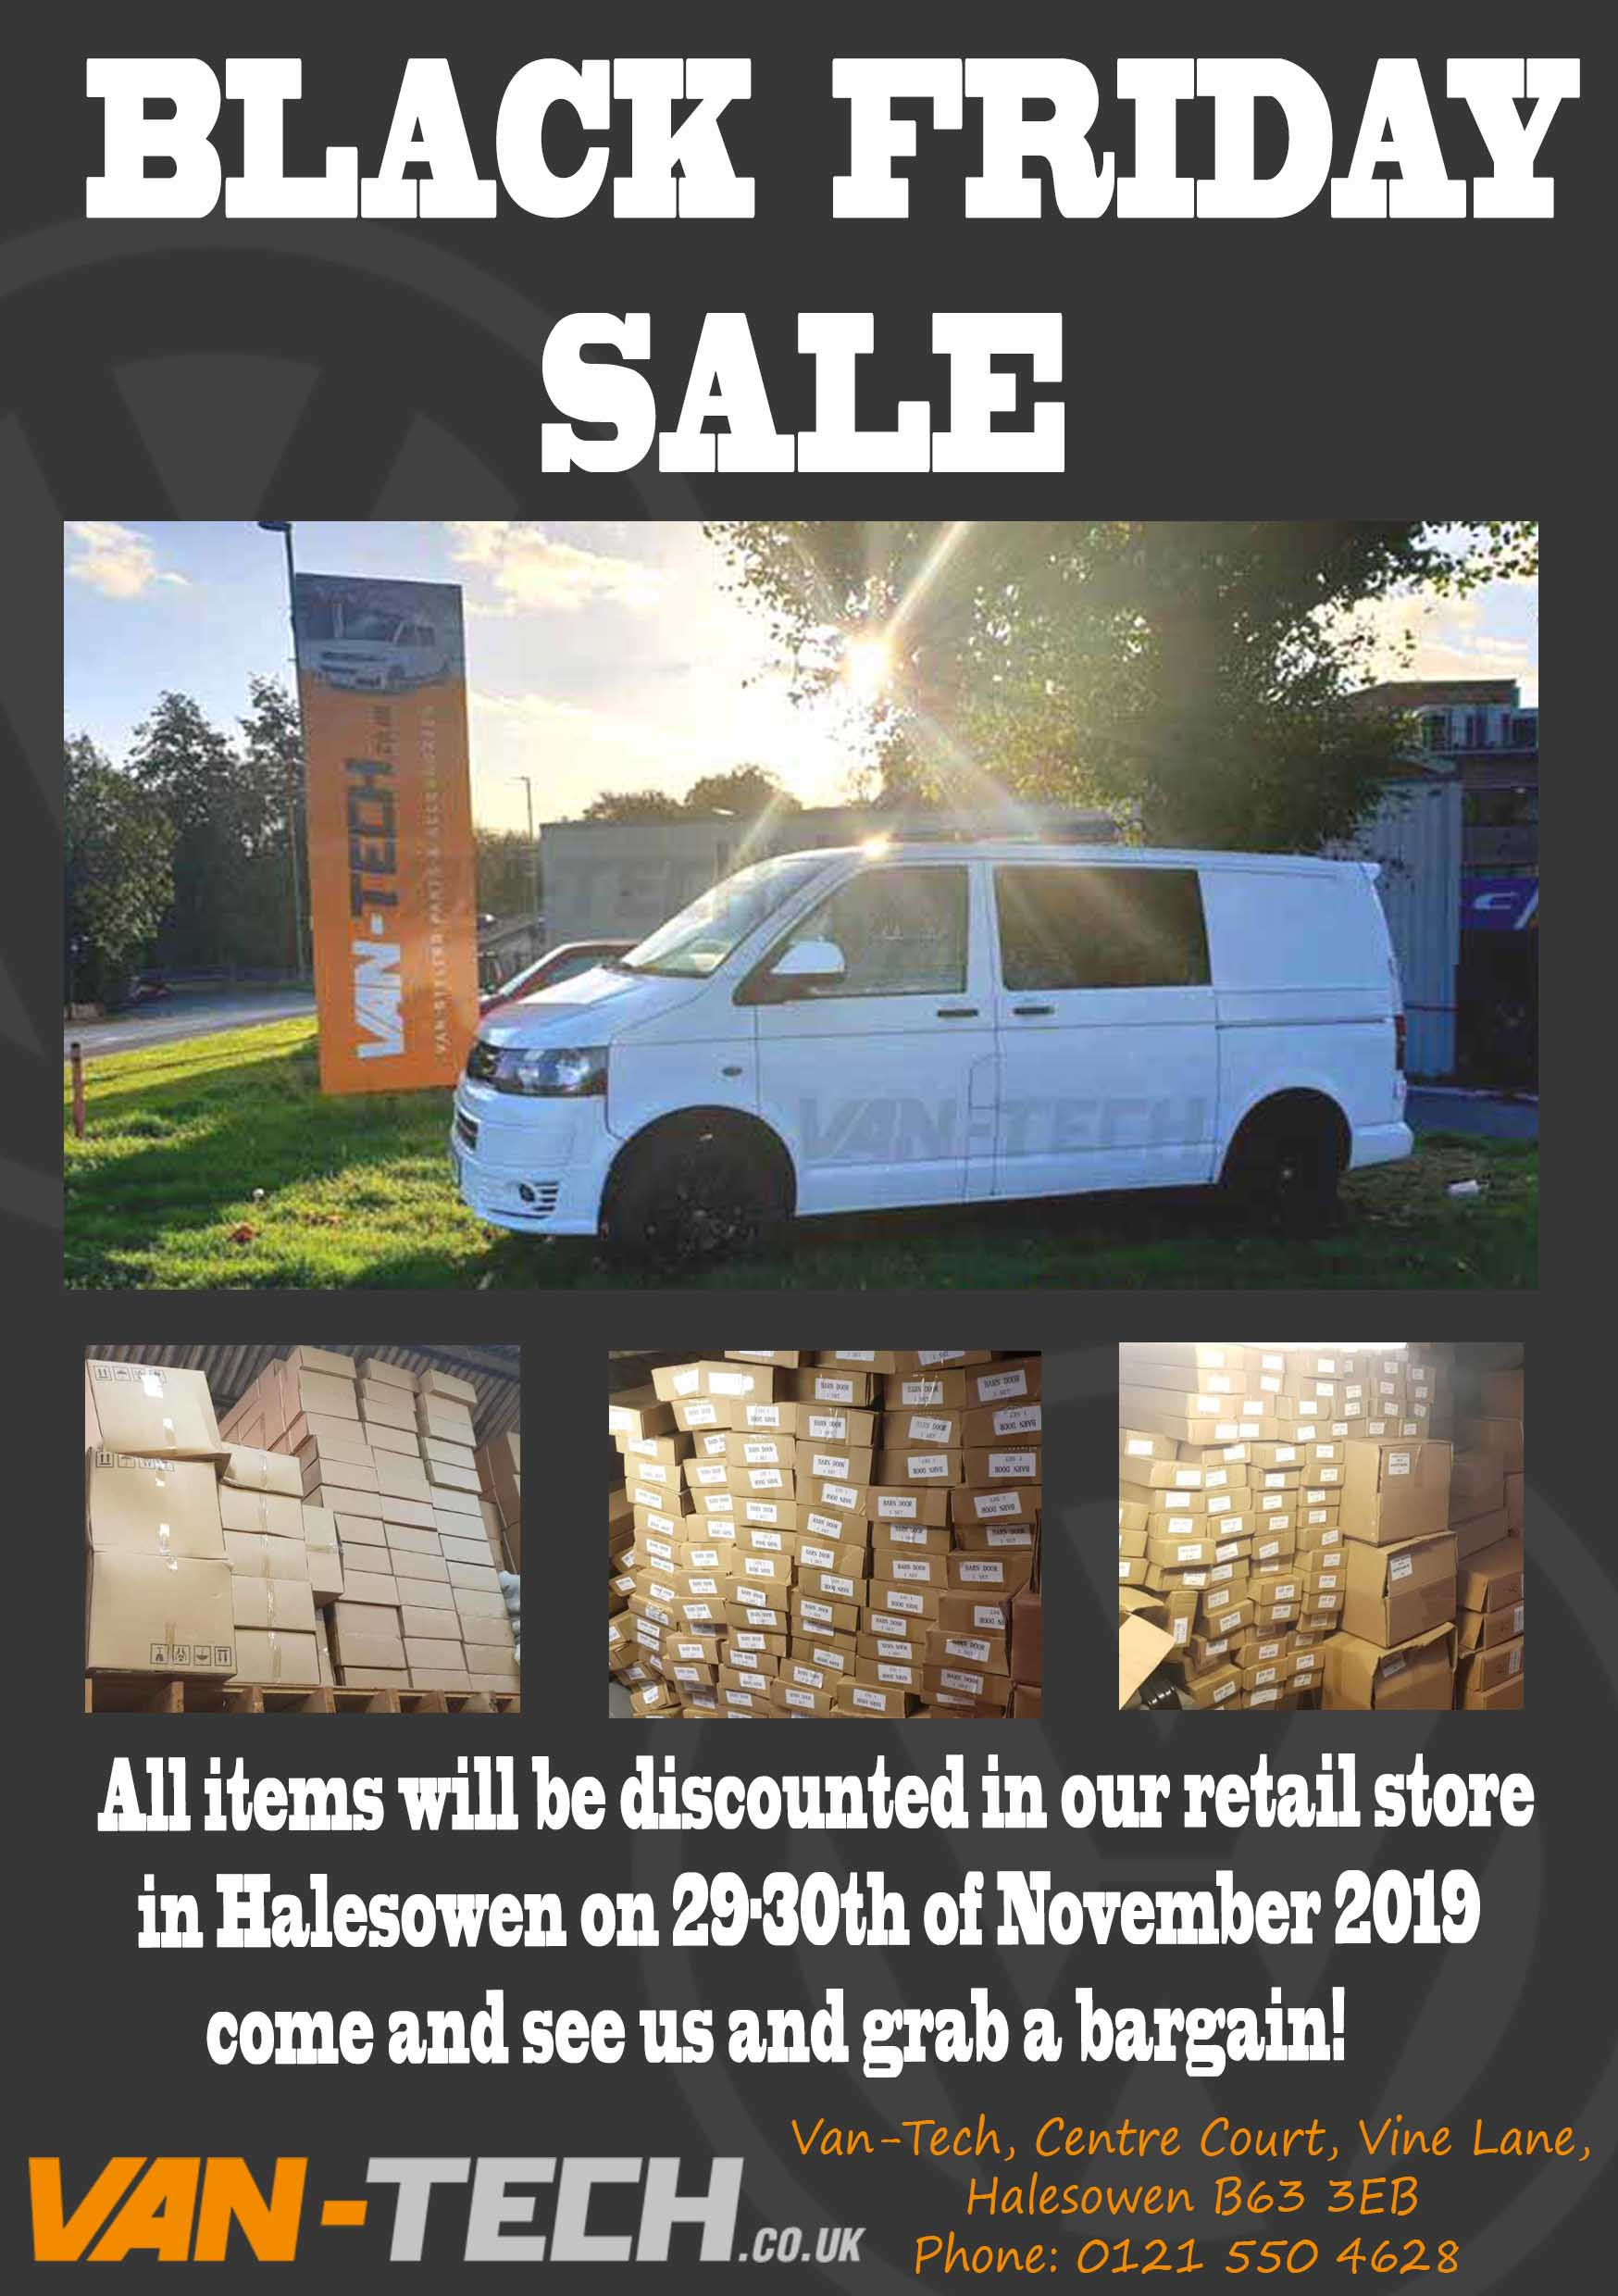 Van-Tech Black Friday Sale all items will be discounted in our retail store